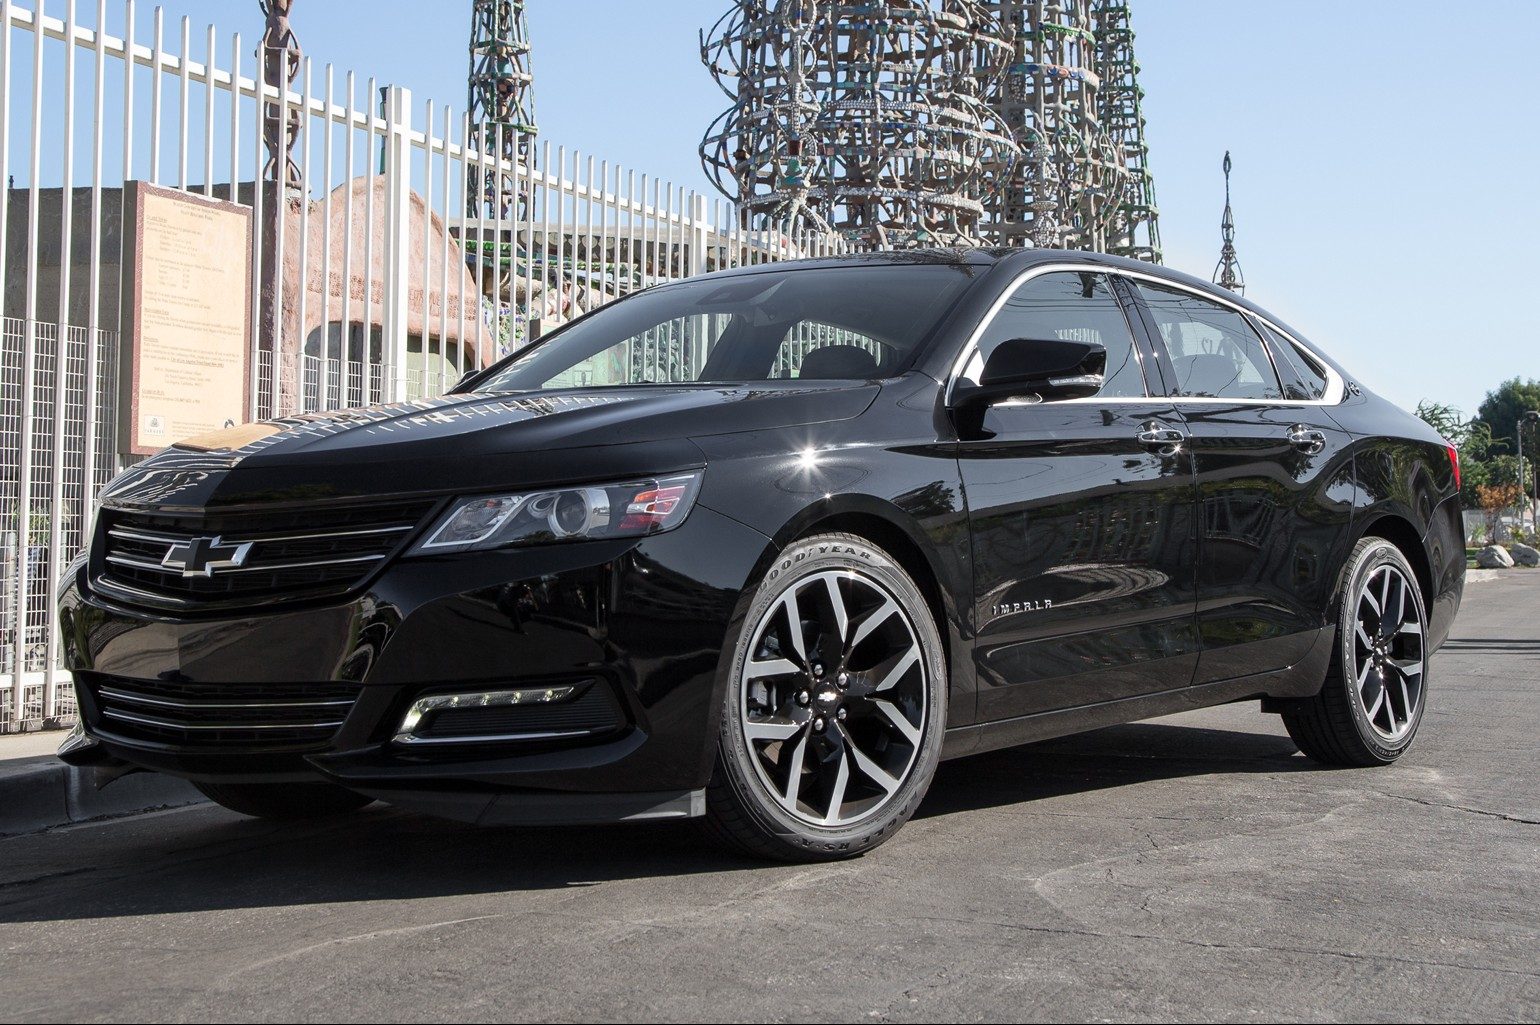 General motors prides itself as one of the most stylish car manufacturer and it would not release the 2016 impala